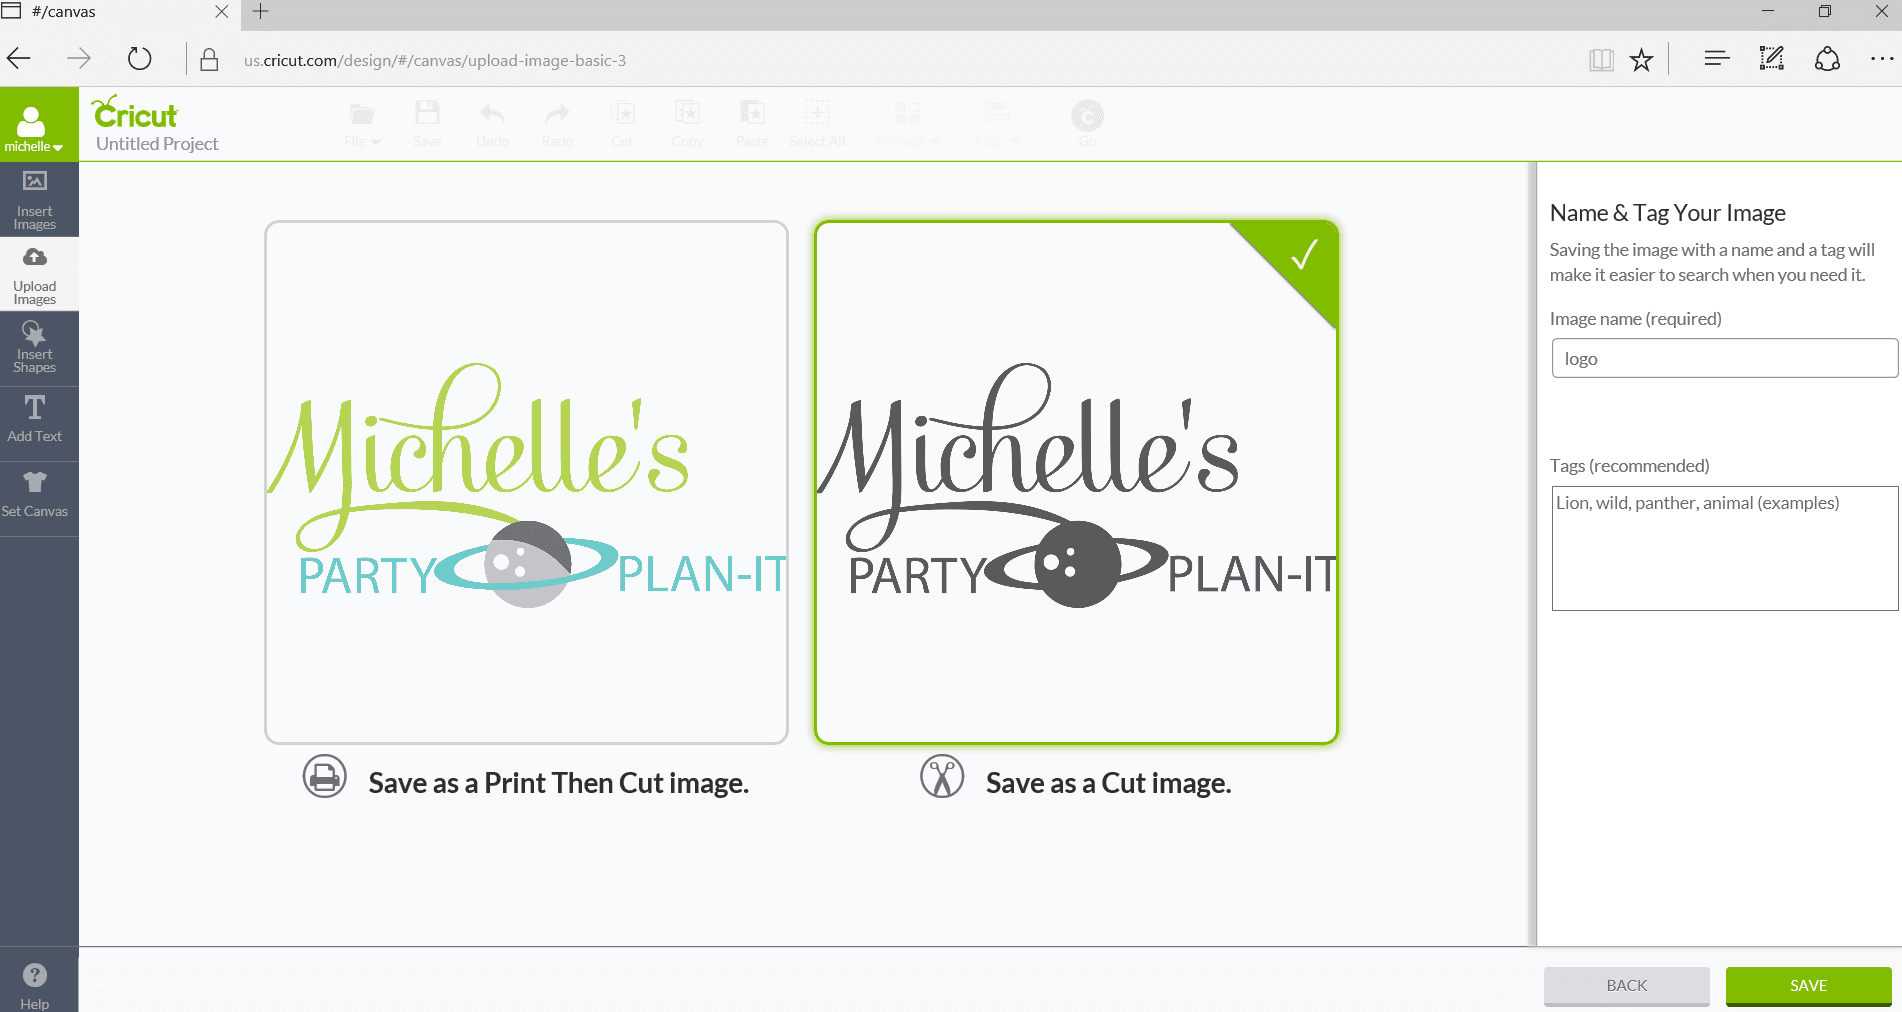 How to Upload Your Own Images with Cricut Explore Air 2 - Print and cut or cut only